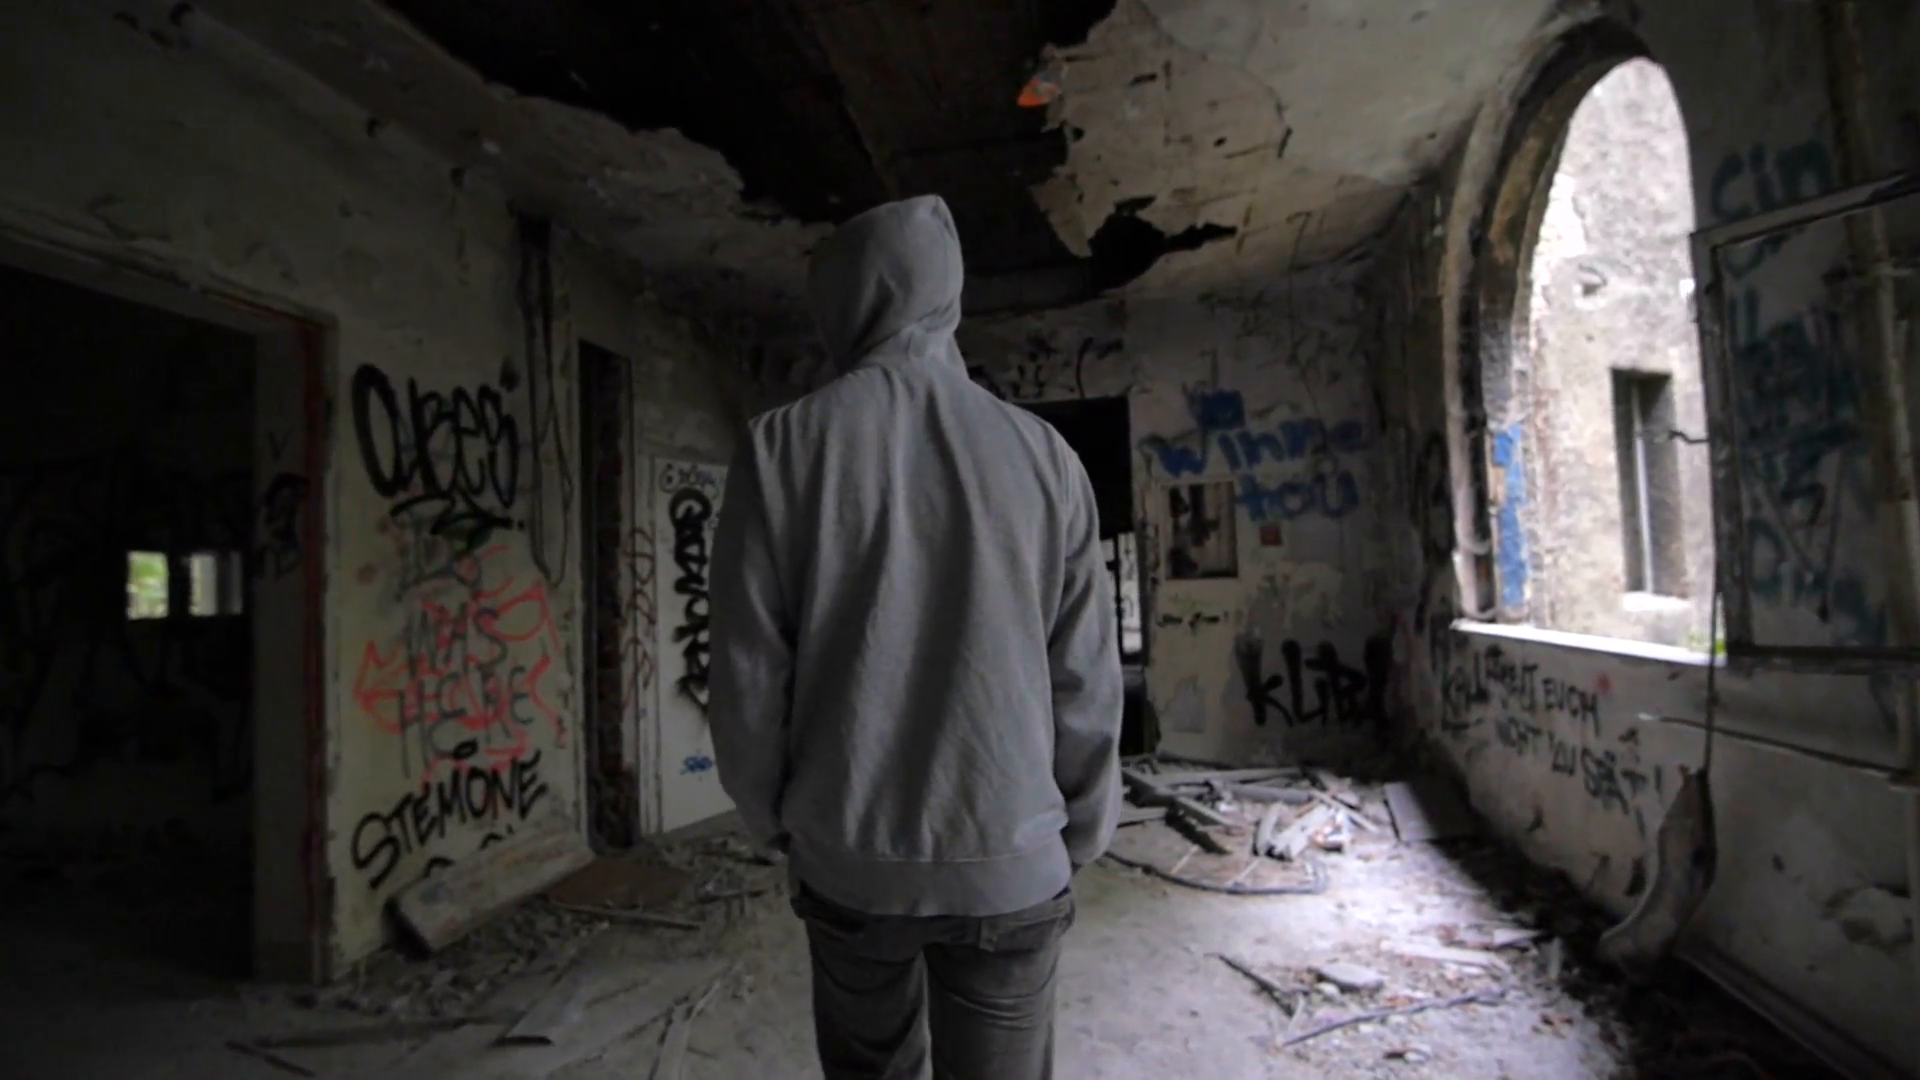 Slow motion of a guy with hood walking through abandoned building ...